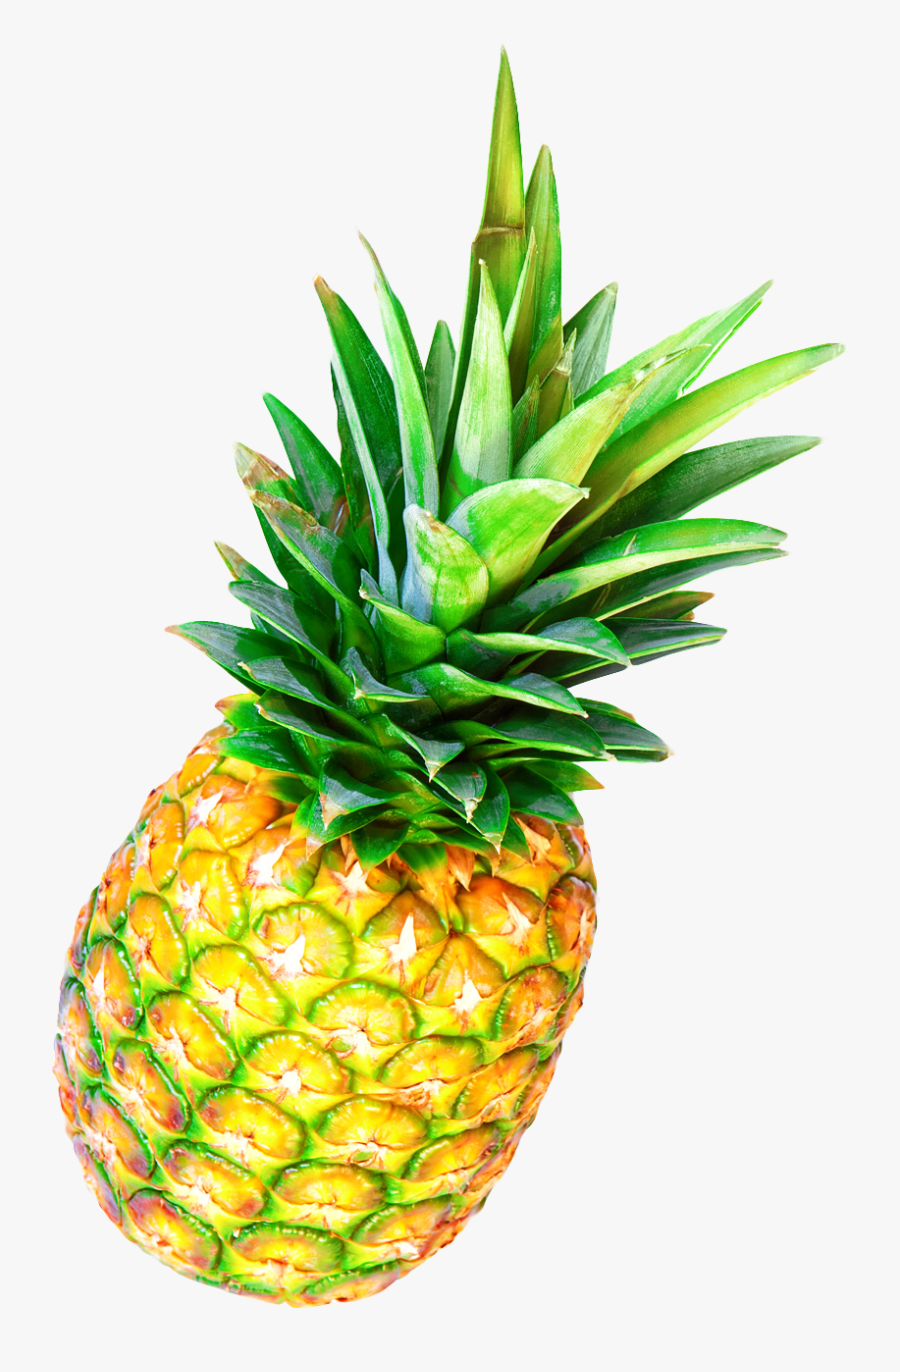 Pineapple Fruit Png Image Clipart , Png Download - Pineapple Transparent Background Png, Transparent Clipart